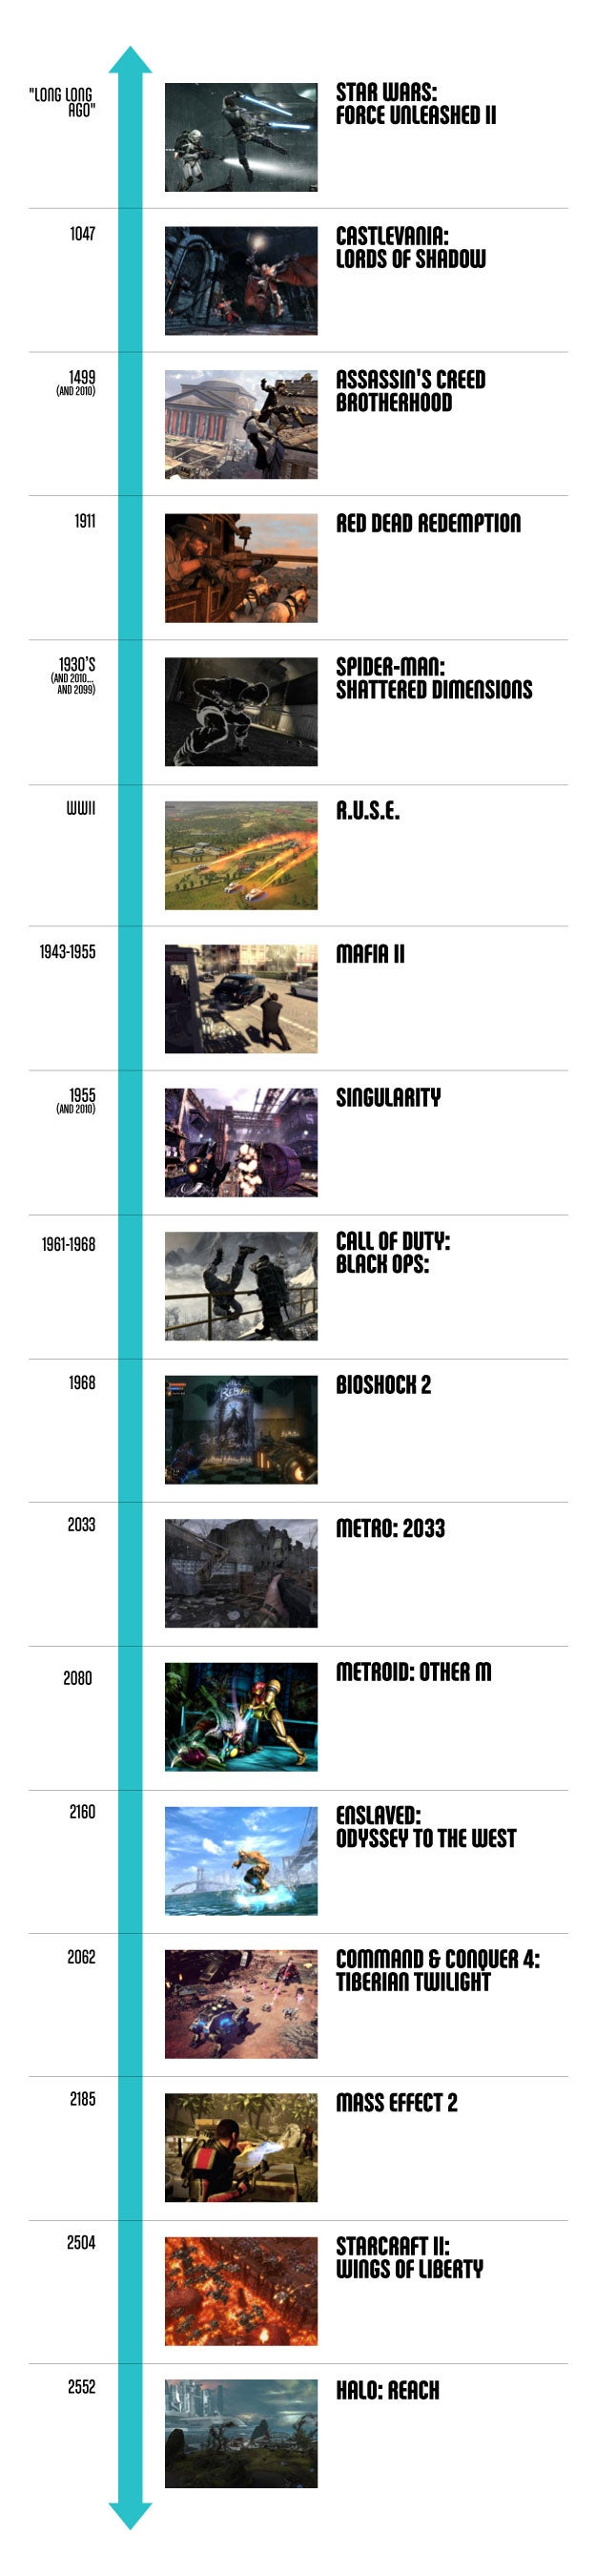 The History Of 2010's Games